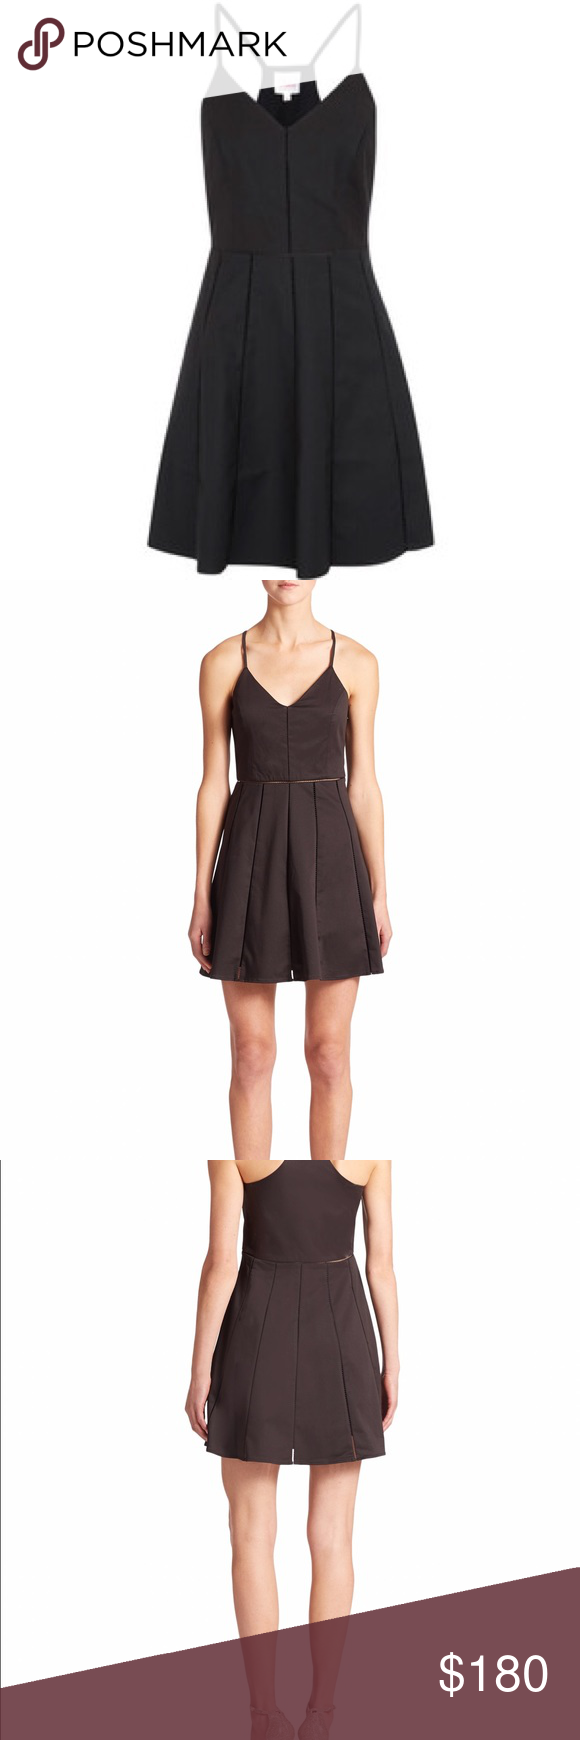 Sporty Cocktail Dresses